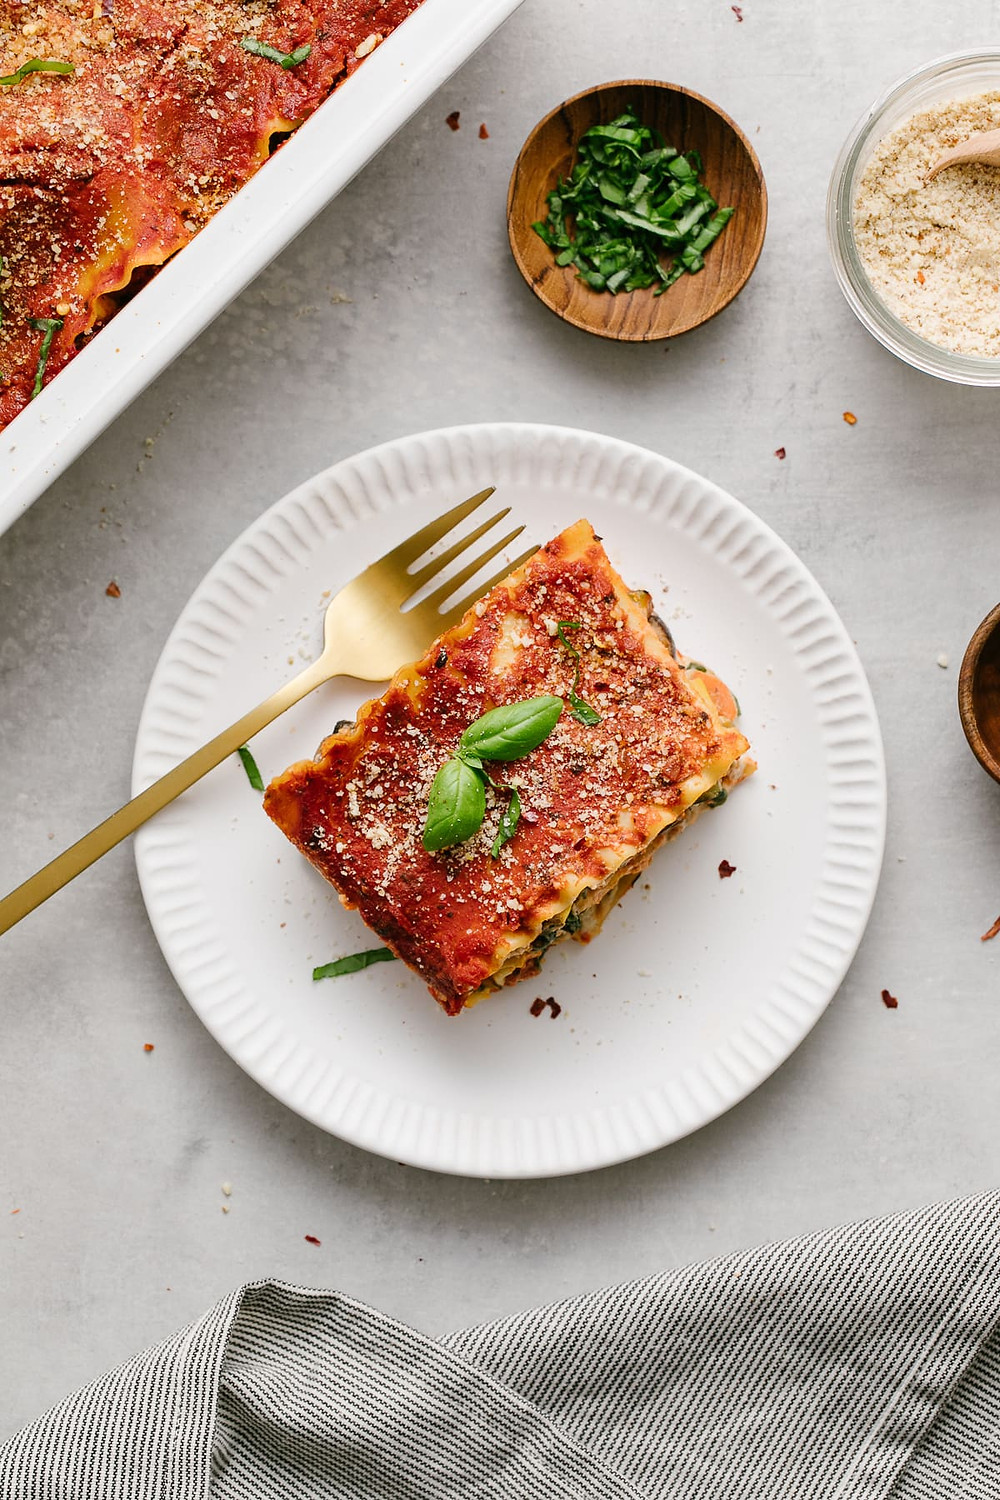 vegan lasagna is full of vegetables and uses vegan ricotta cheese